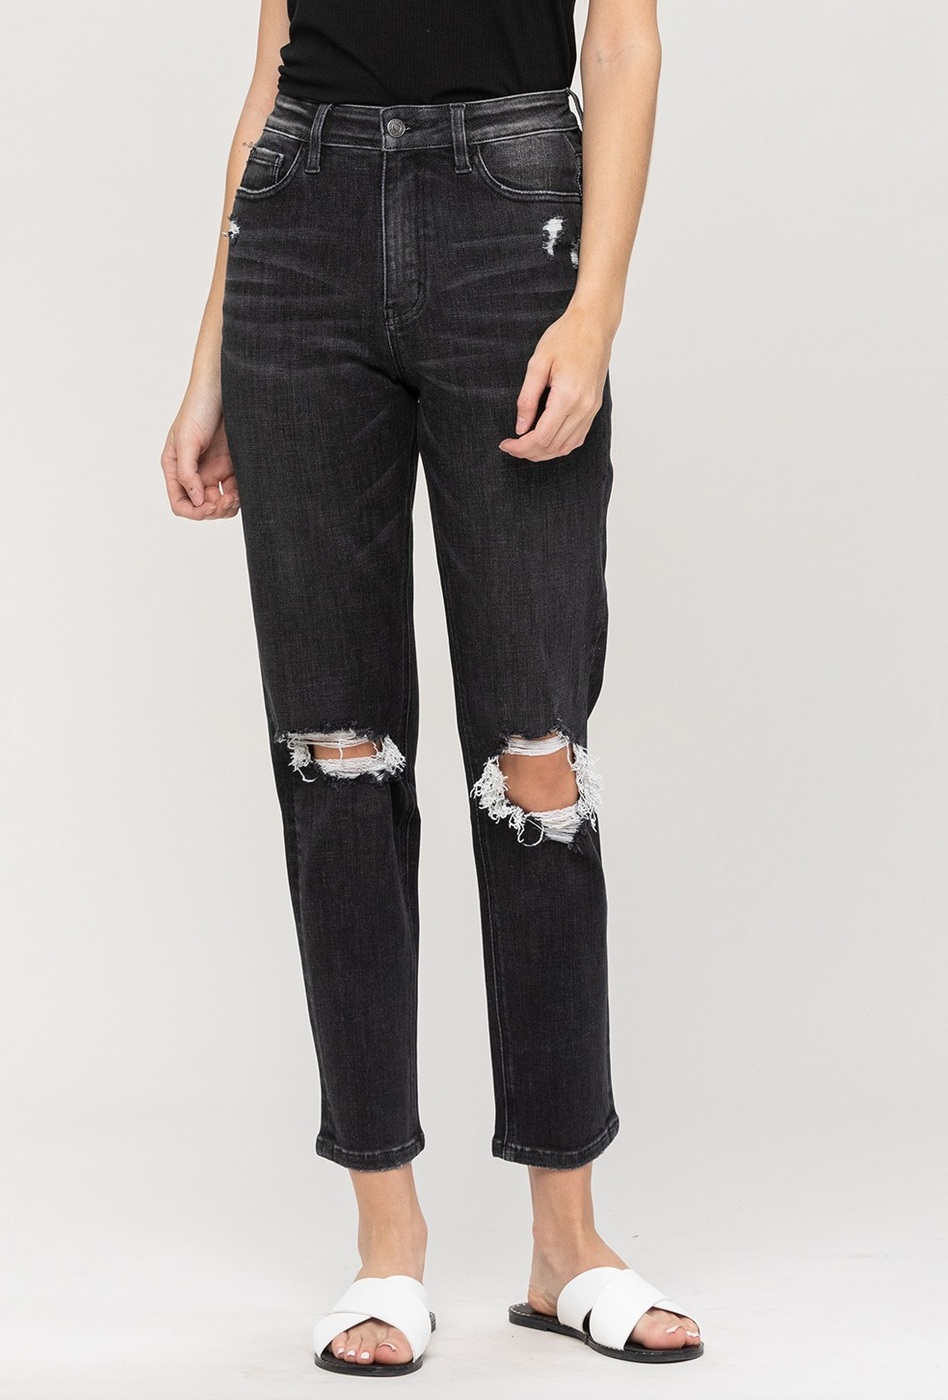 veronica distressed stretch mom jean